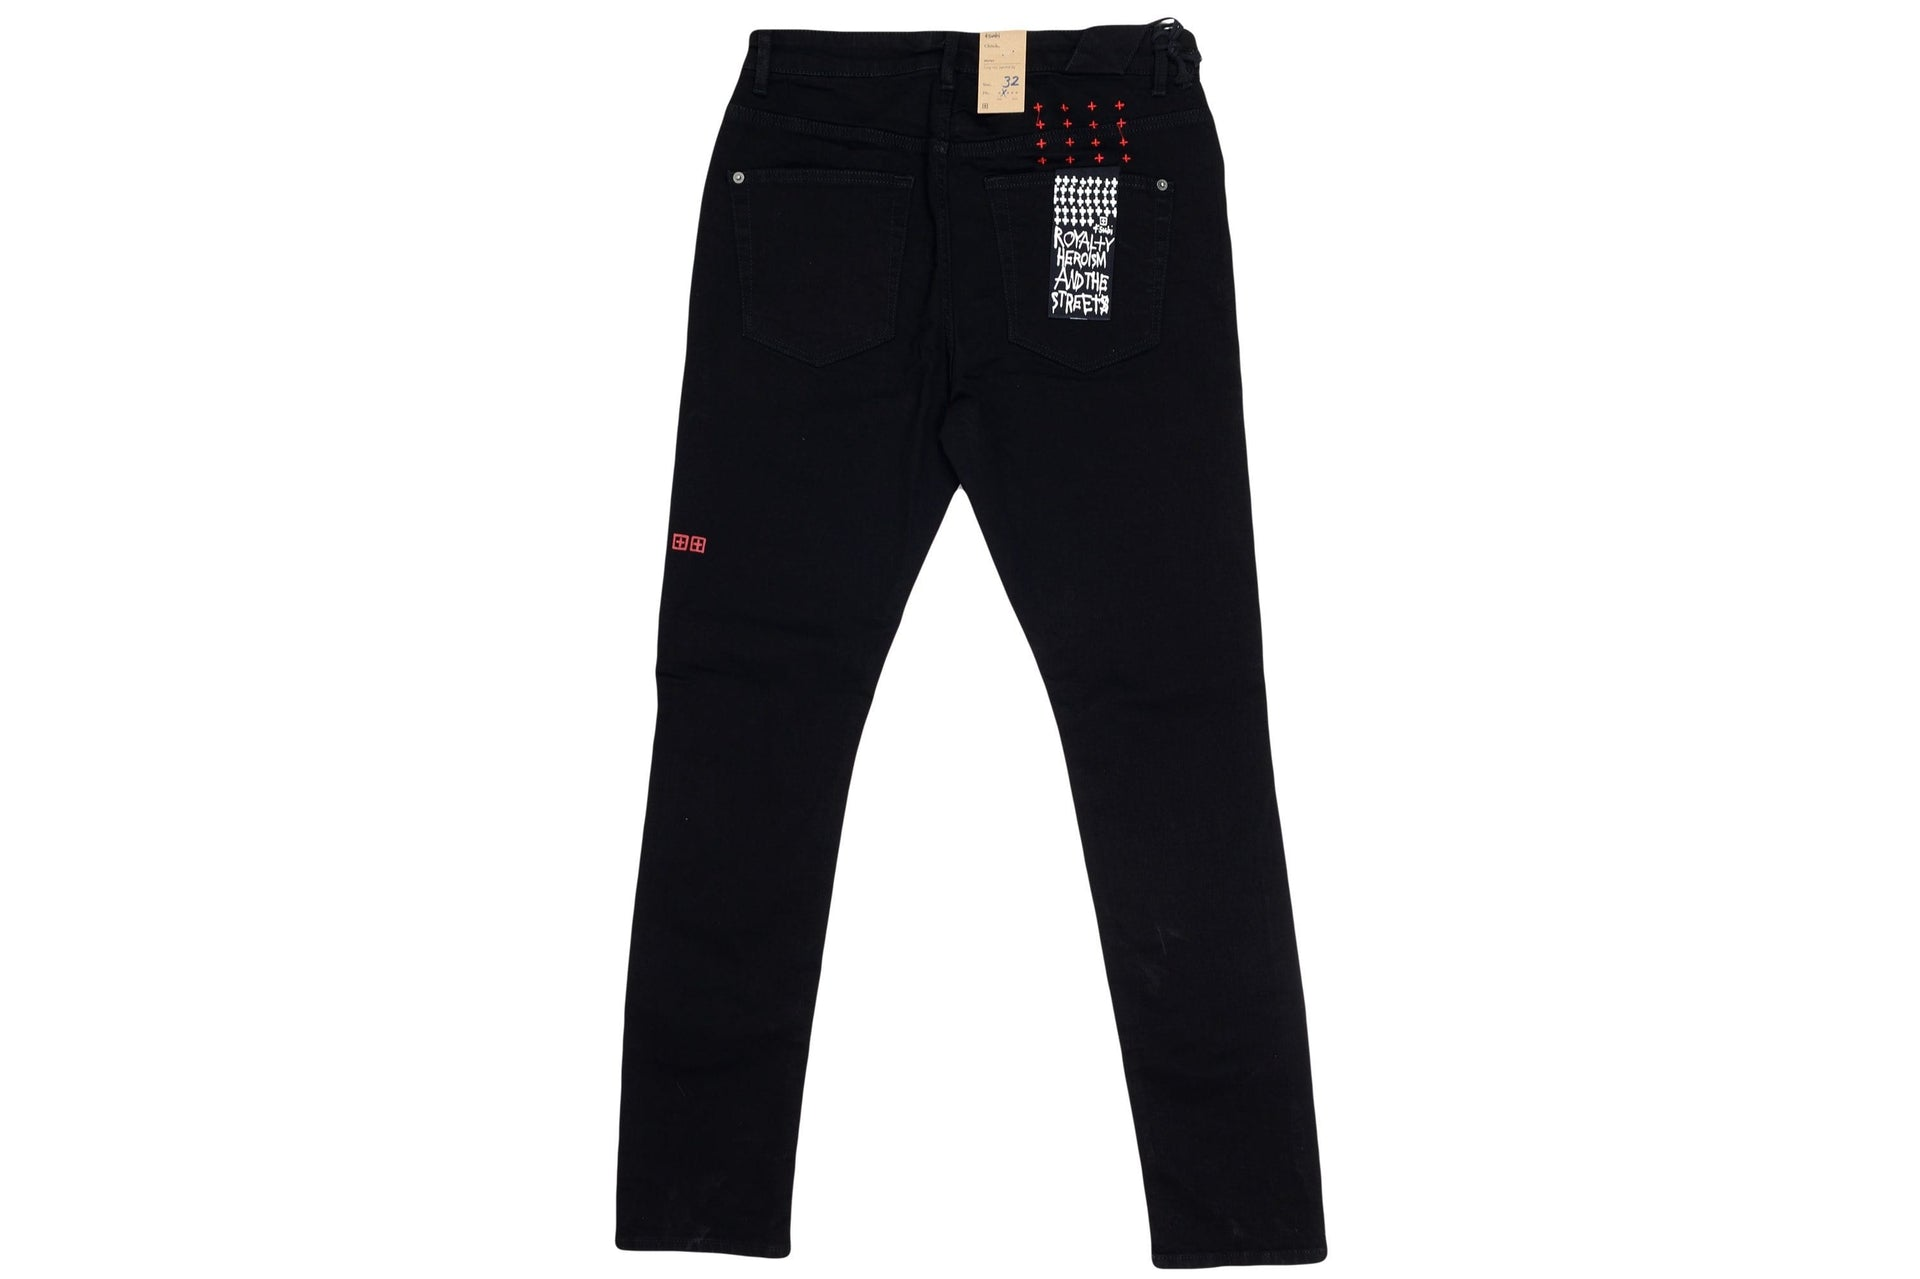 CHITCH LAID BLACK MENS SOFTGOODS KSUBI